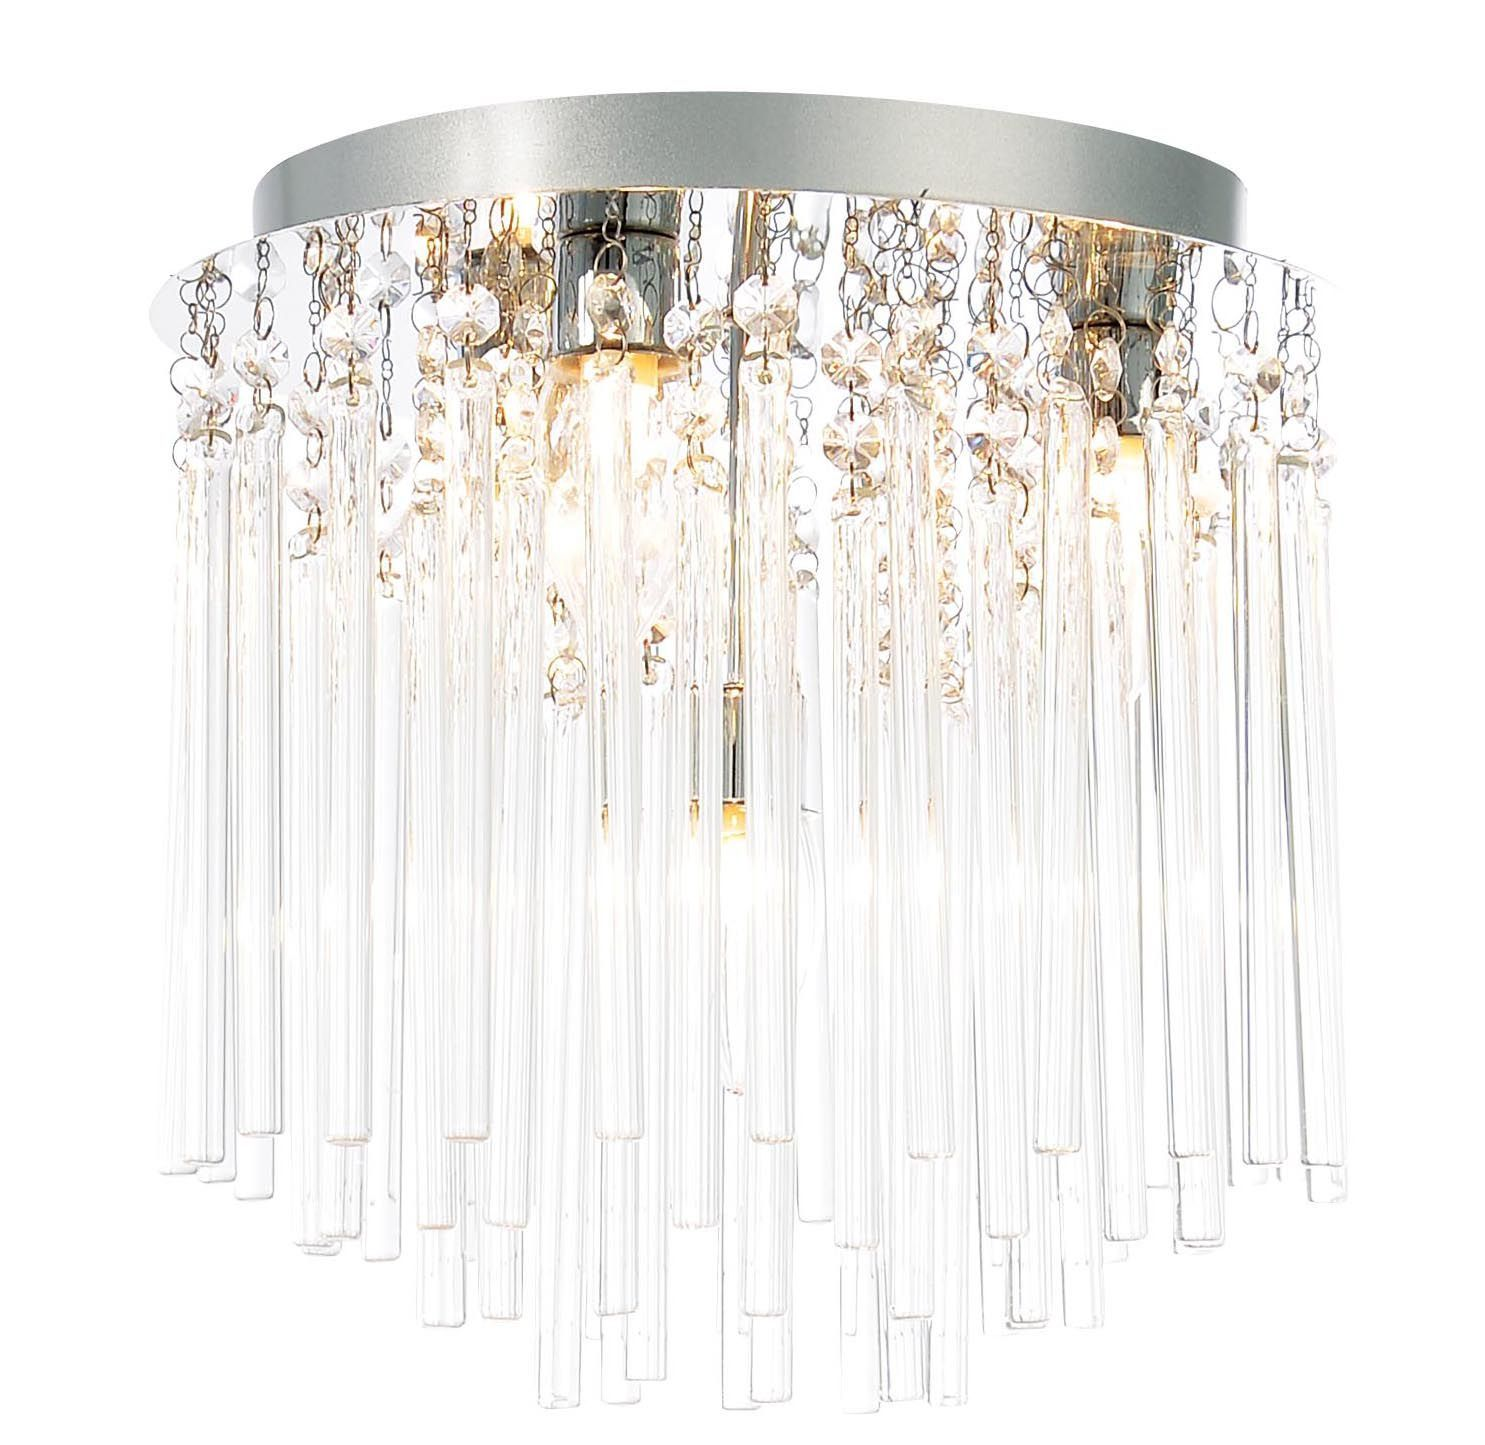 reputable site 69bea 70f53 Tooma Chrome Effect 4 Lamp Bathroom Ceiling Light | Bathroom ...